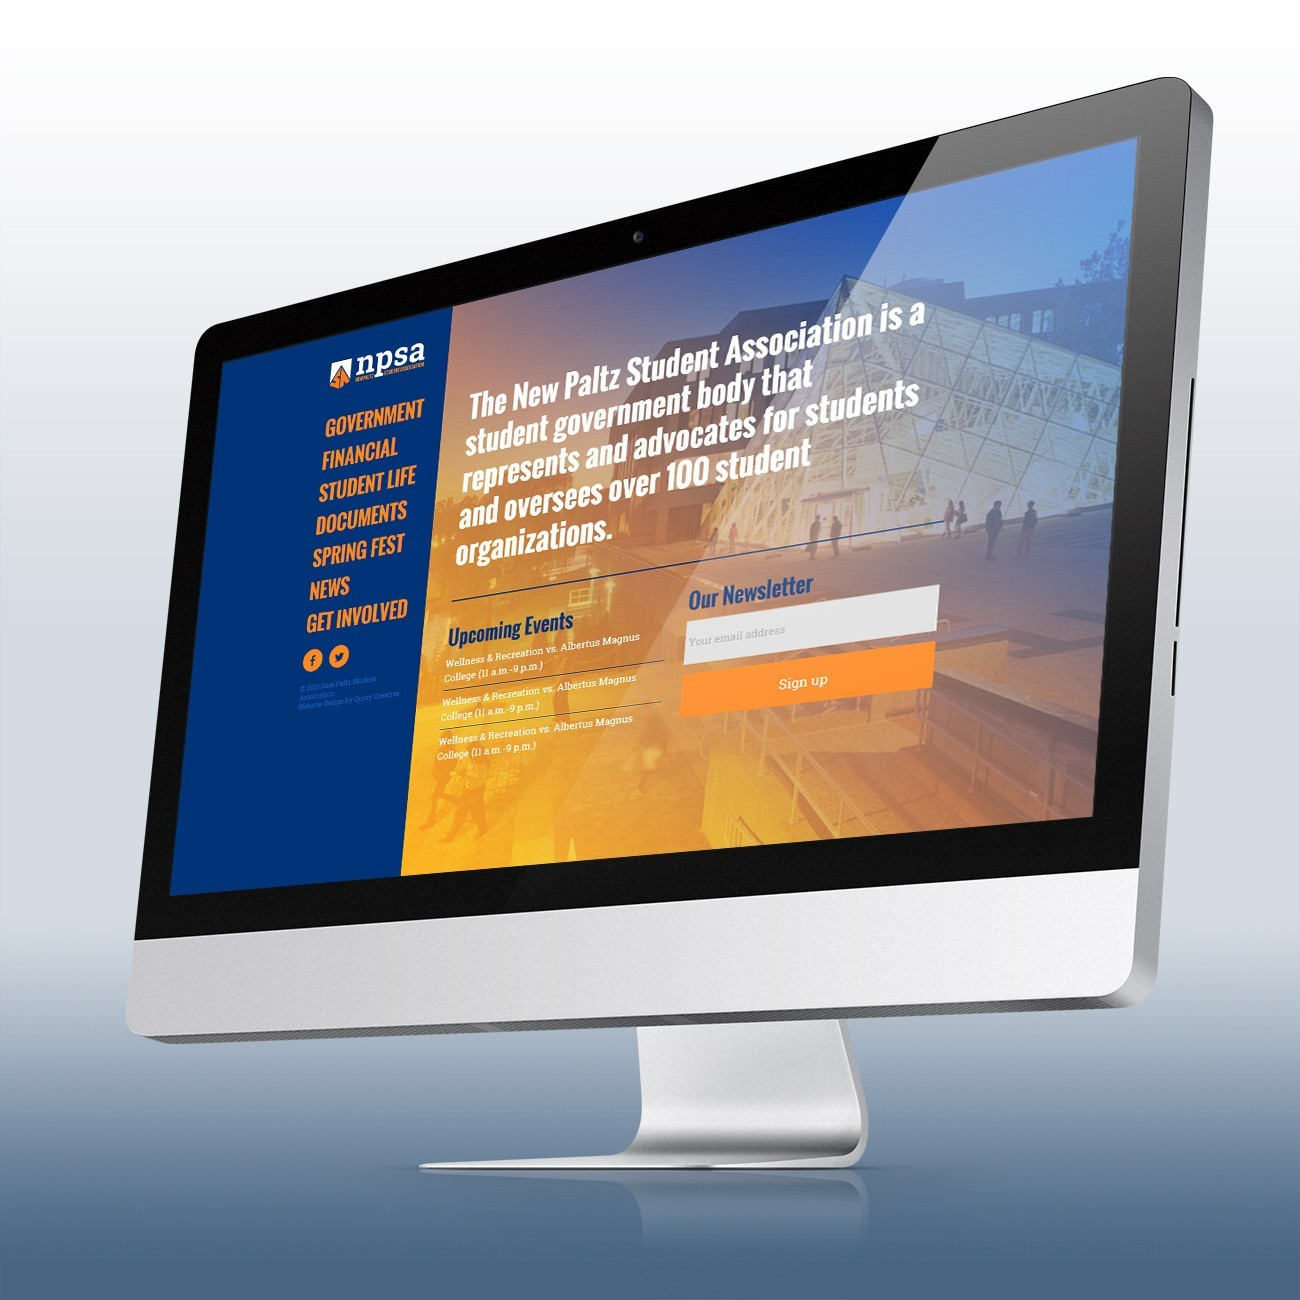 New Paltz Student Association Website, designed by Query Creative in the Hudson Valley